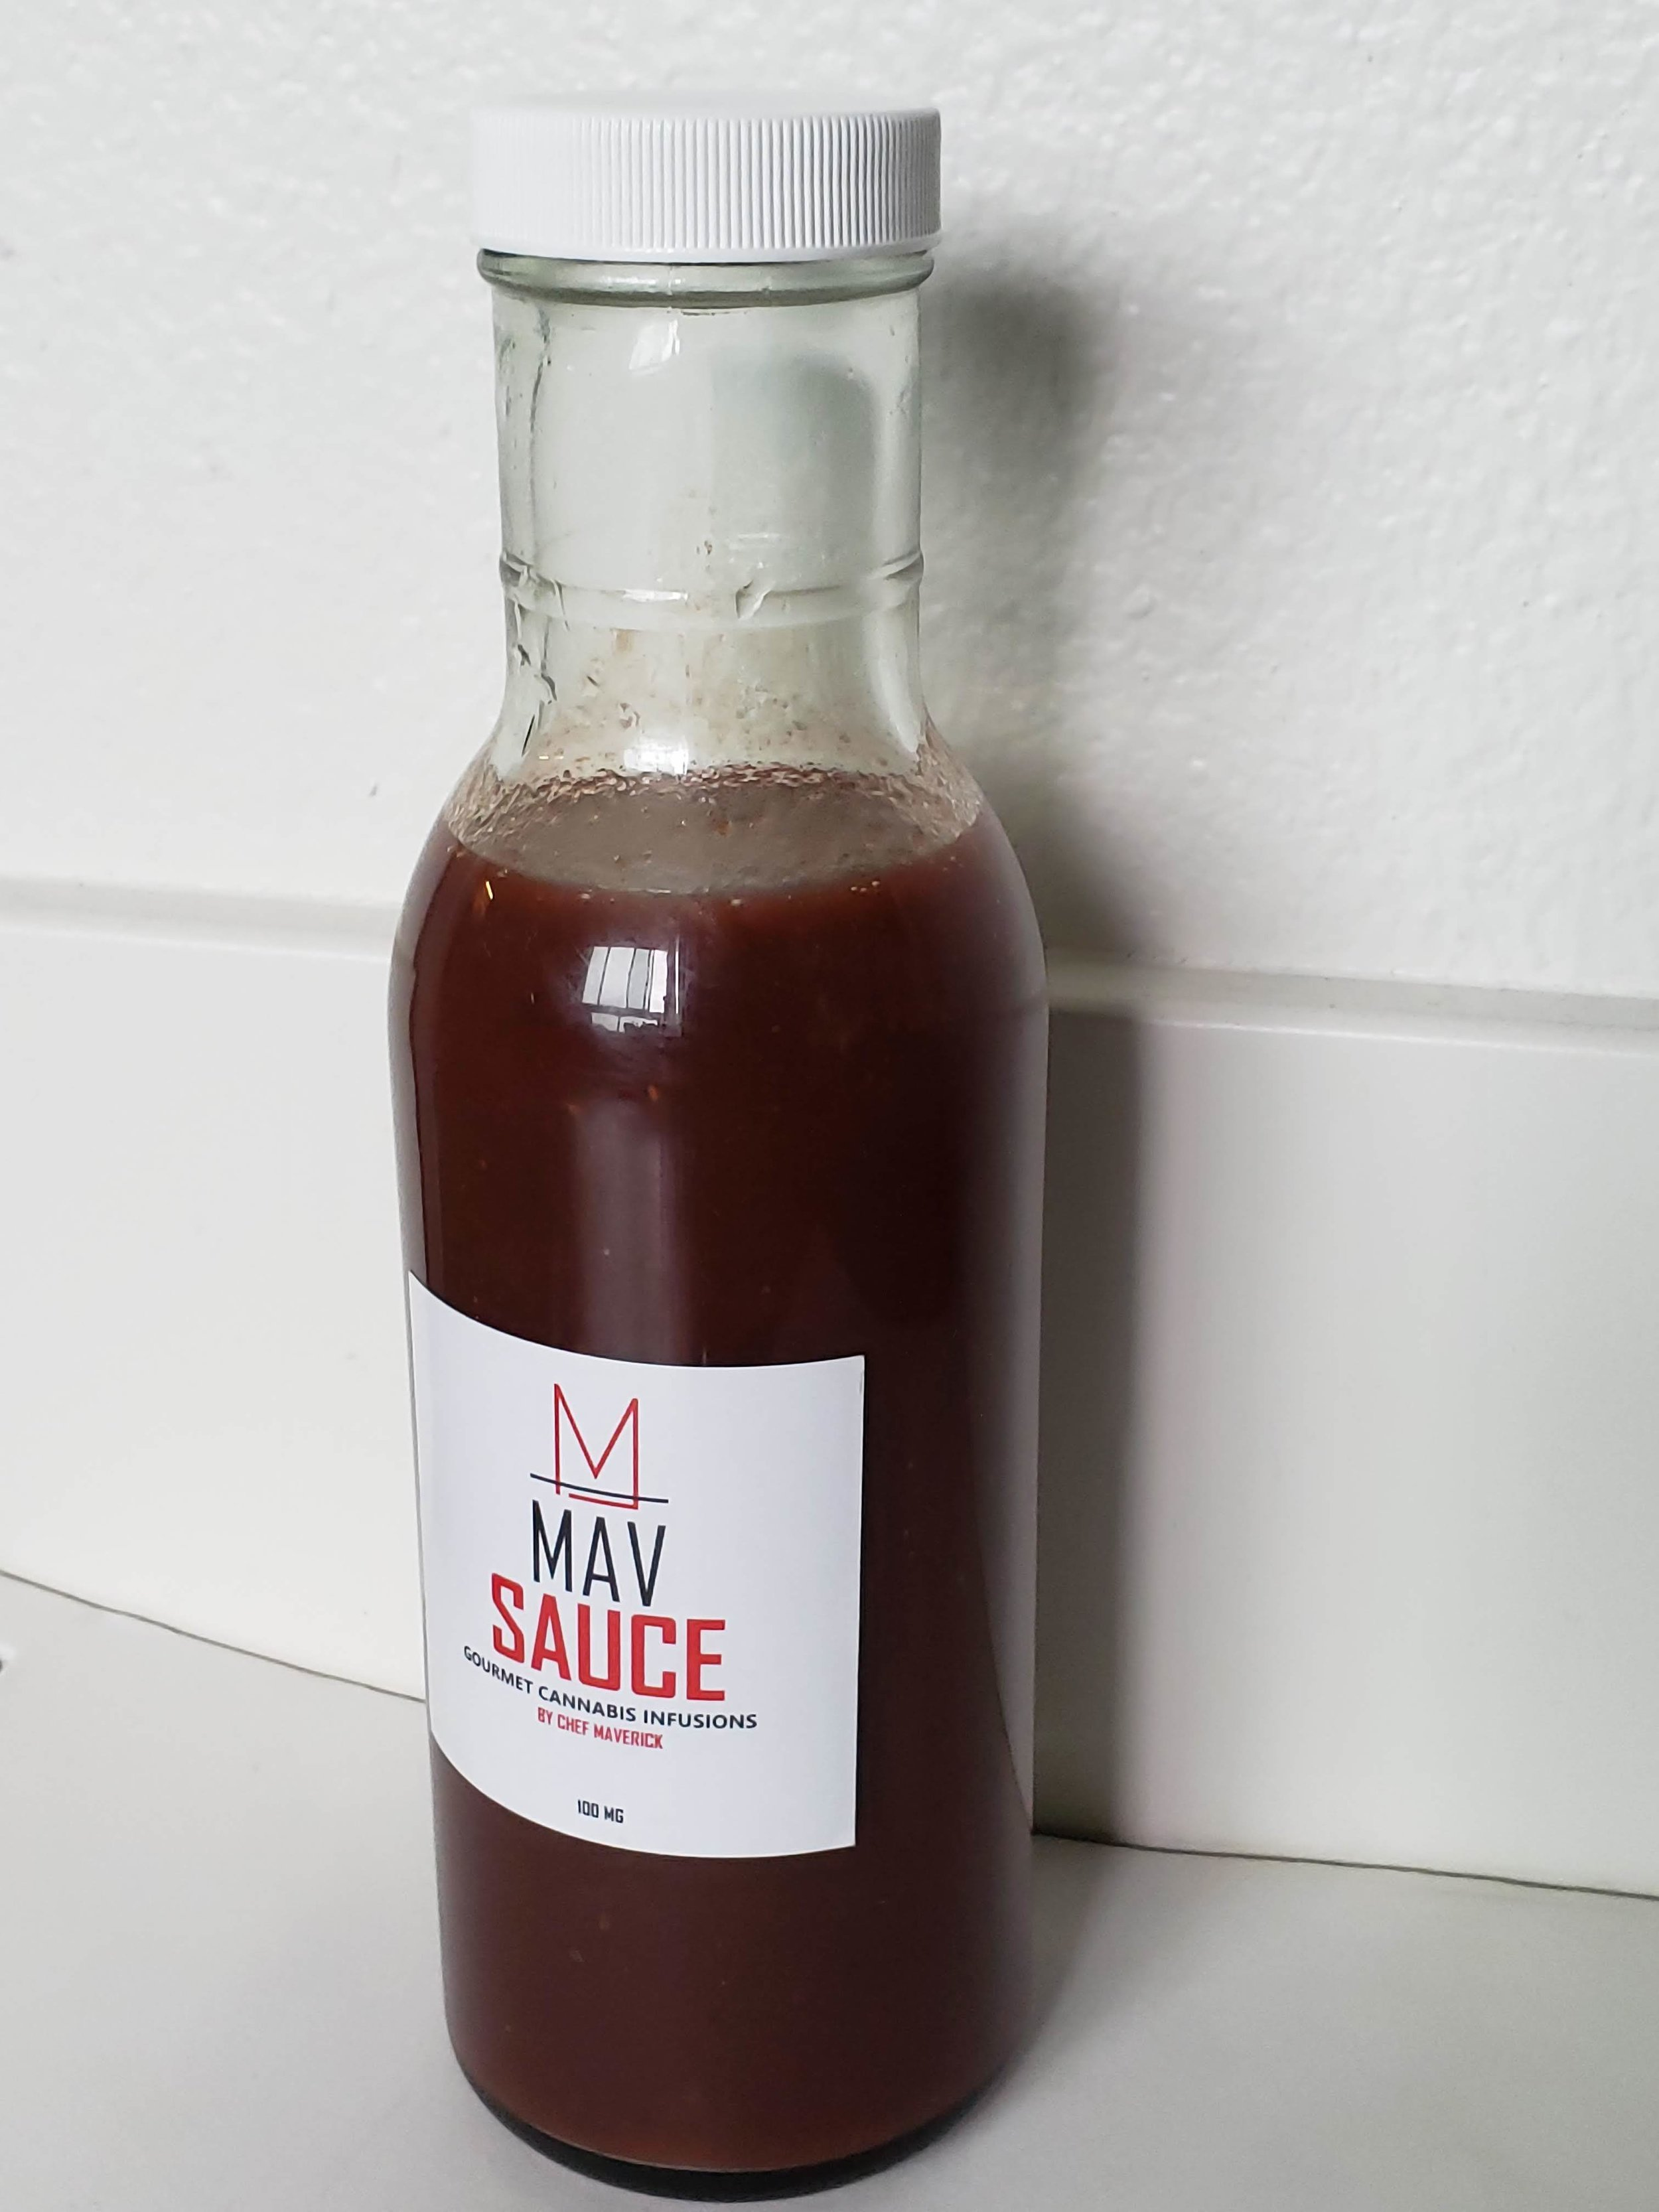 BALSAMIC VINAIGRETTE   CHEF MAVERICK'S SPECIAL INFUSED RECIPE BALSAMIC VINAIGRETTE BLENDED WITH ORGANIC EXTRA VIRGIN OLIVE OIL.   AVAILABLE DOSES : 12 OZ - 150 MG   GLUTEN FREE, SOY FREE